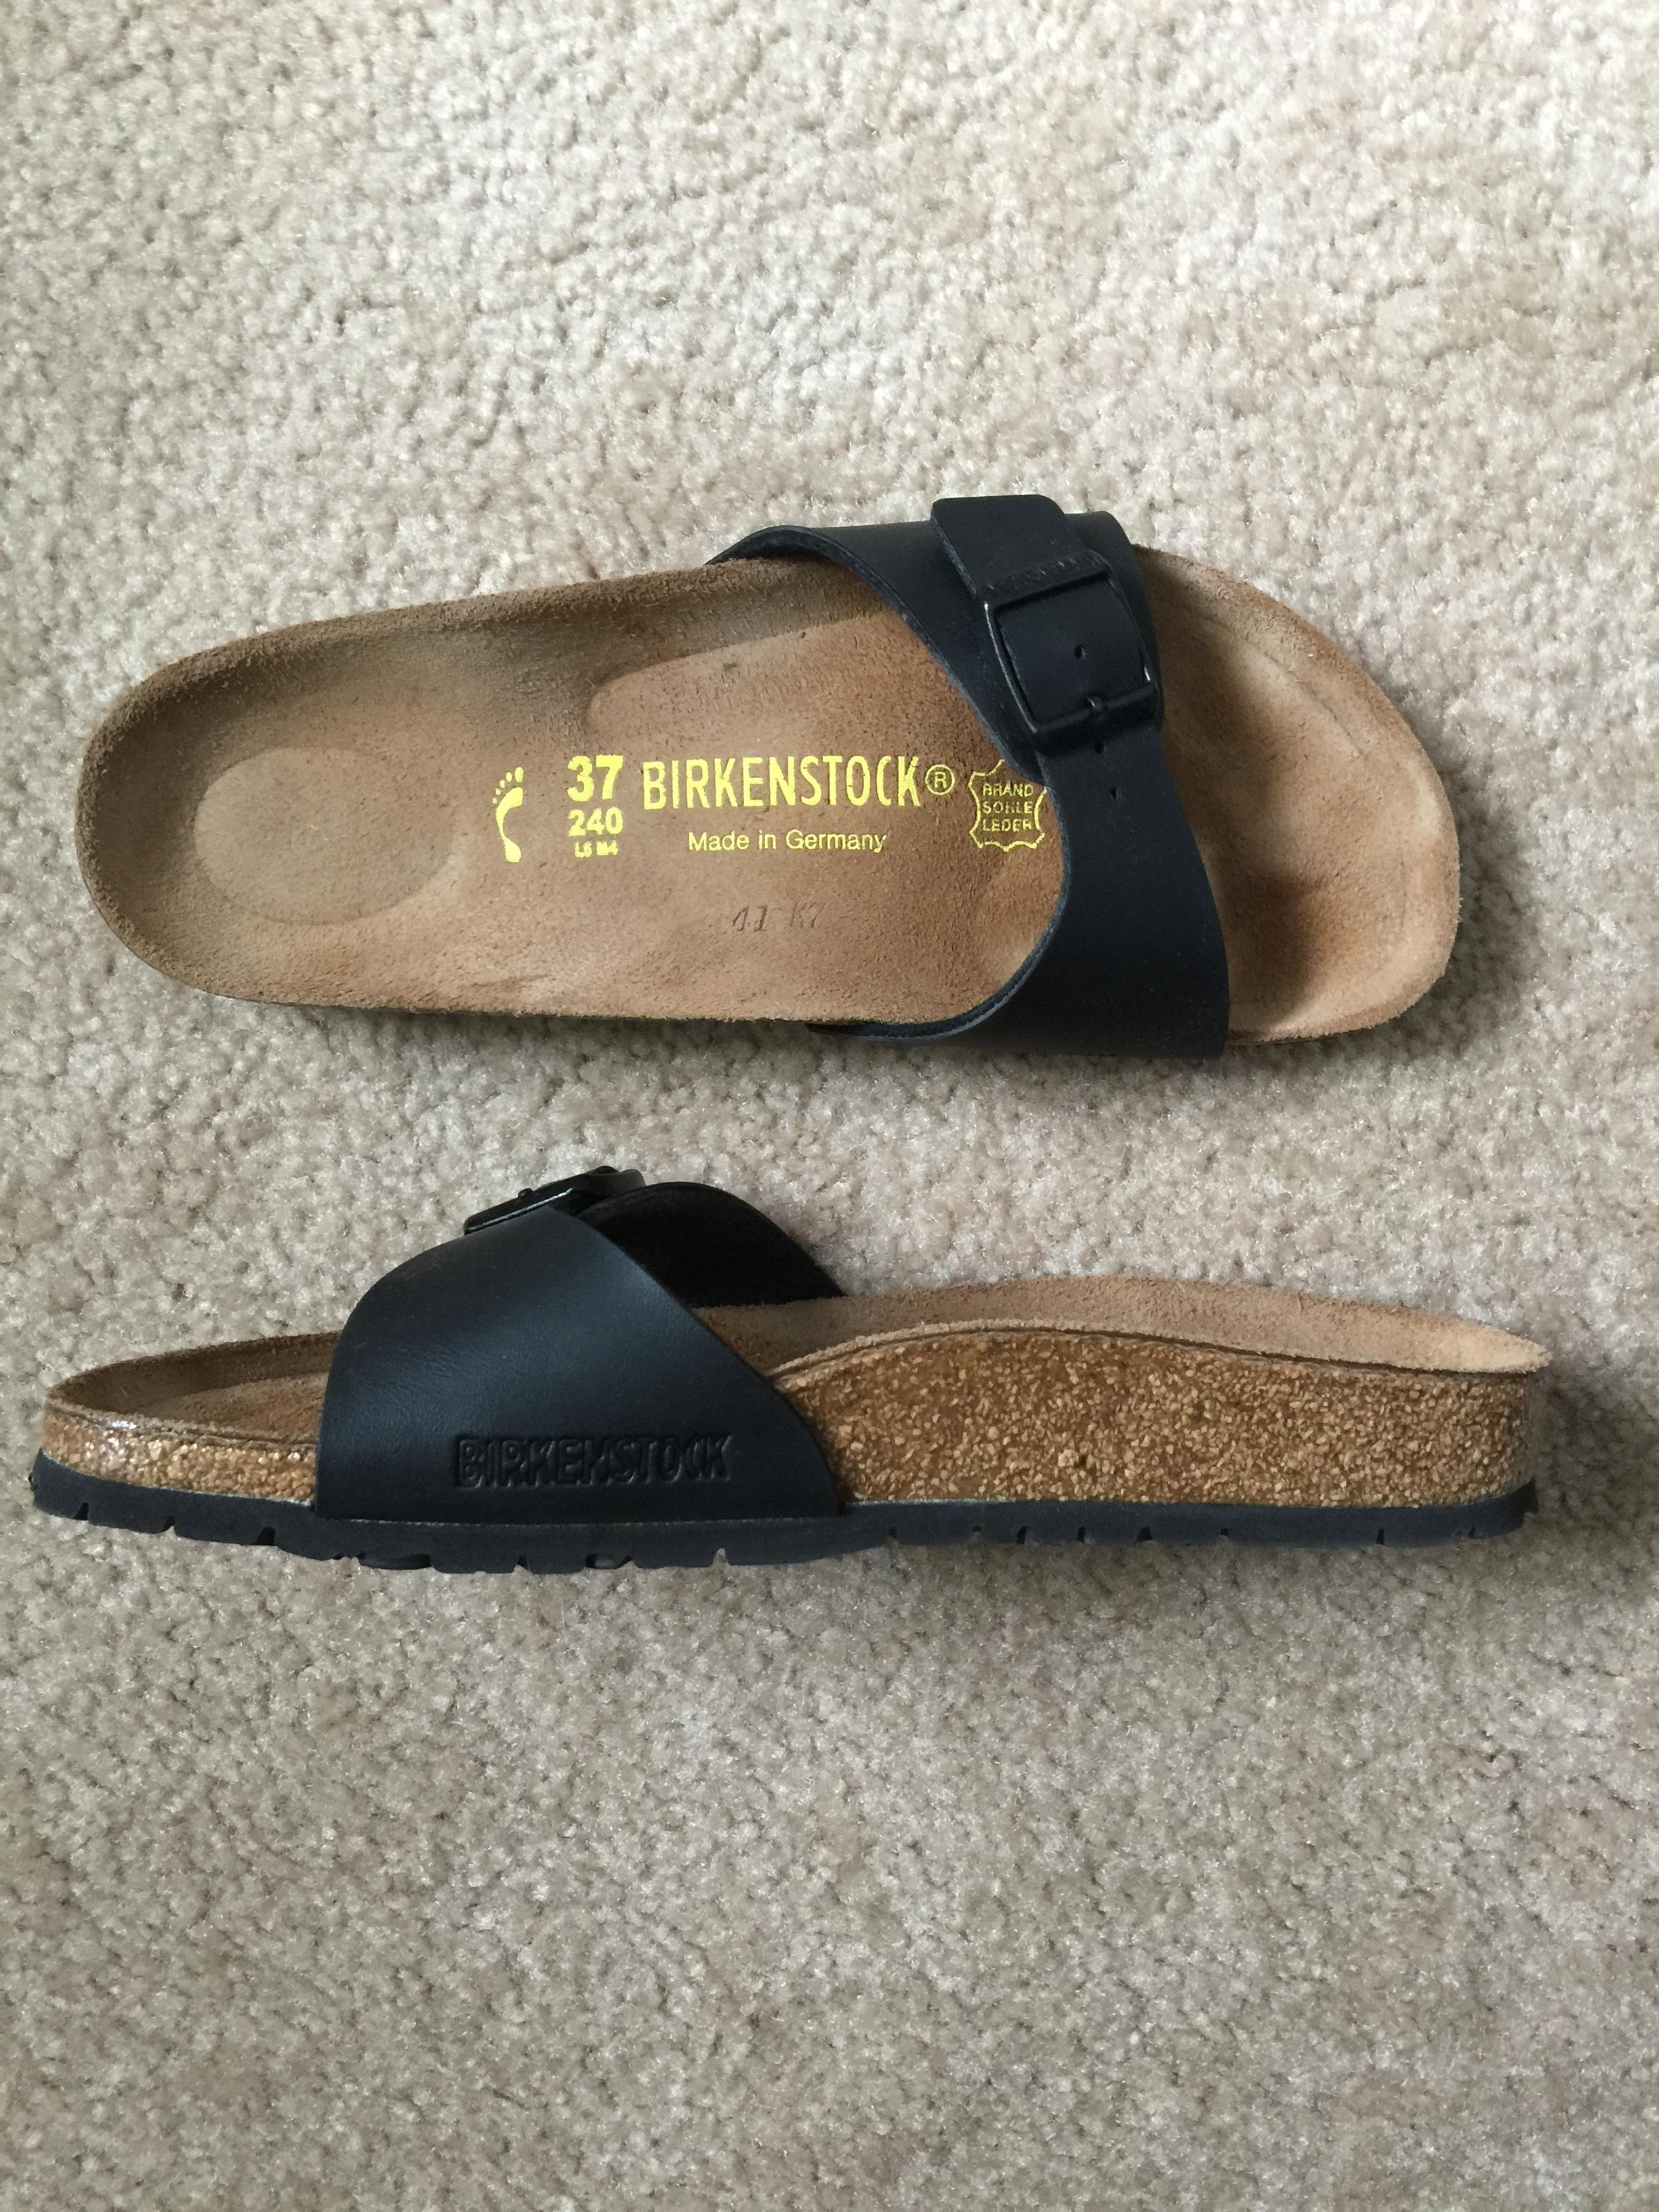 Sandals Birkenstock Piazza Outlet Feet Shoes  c6a65a118